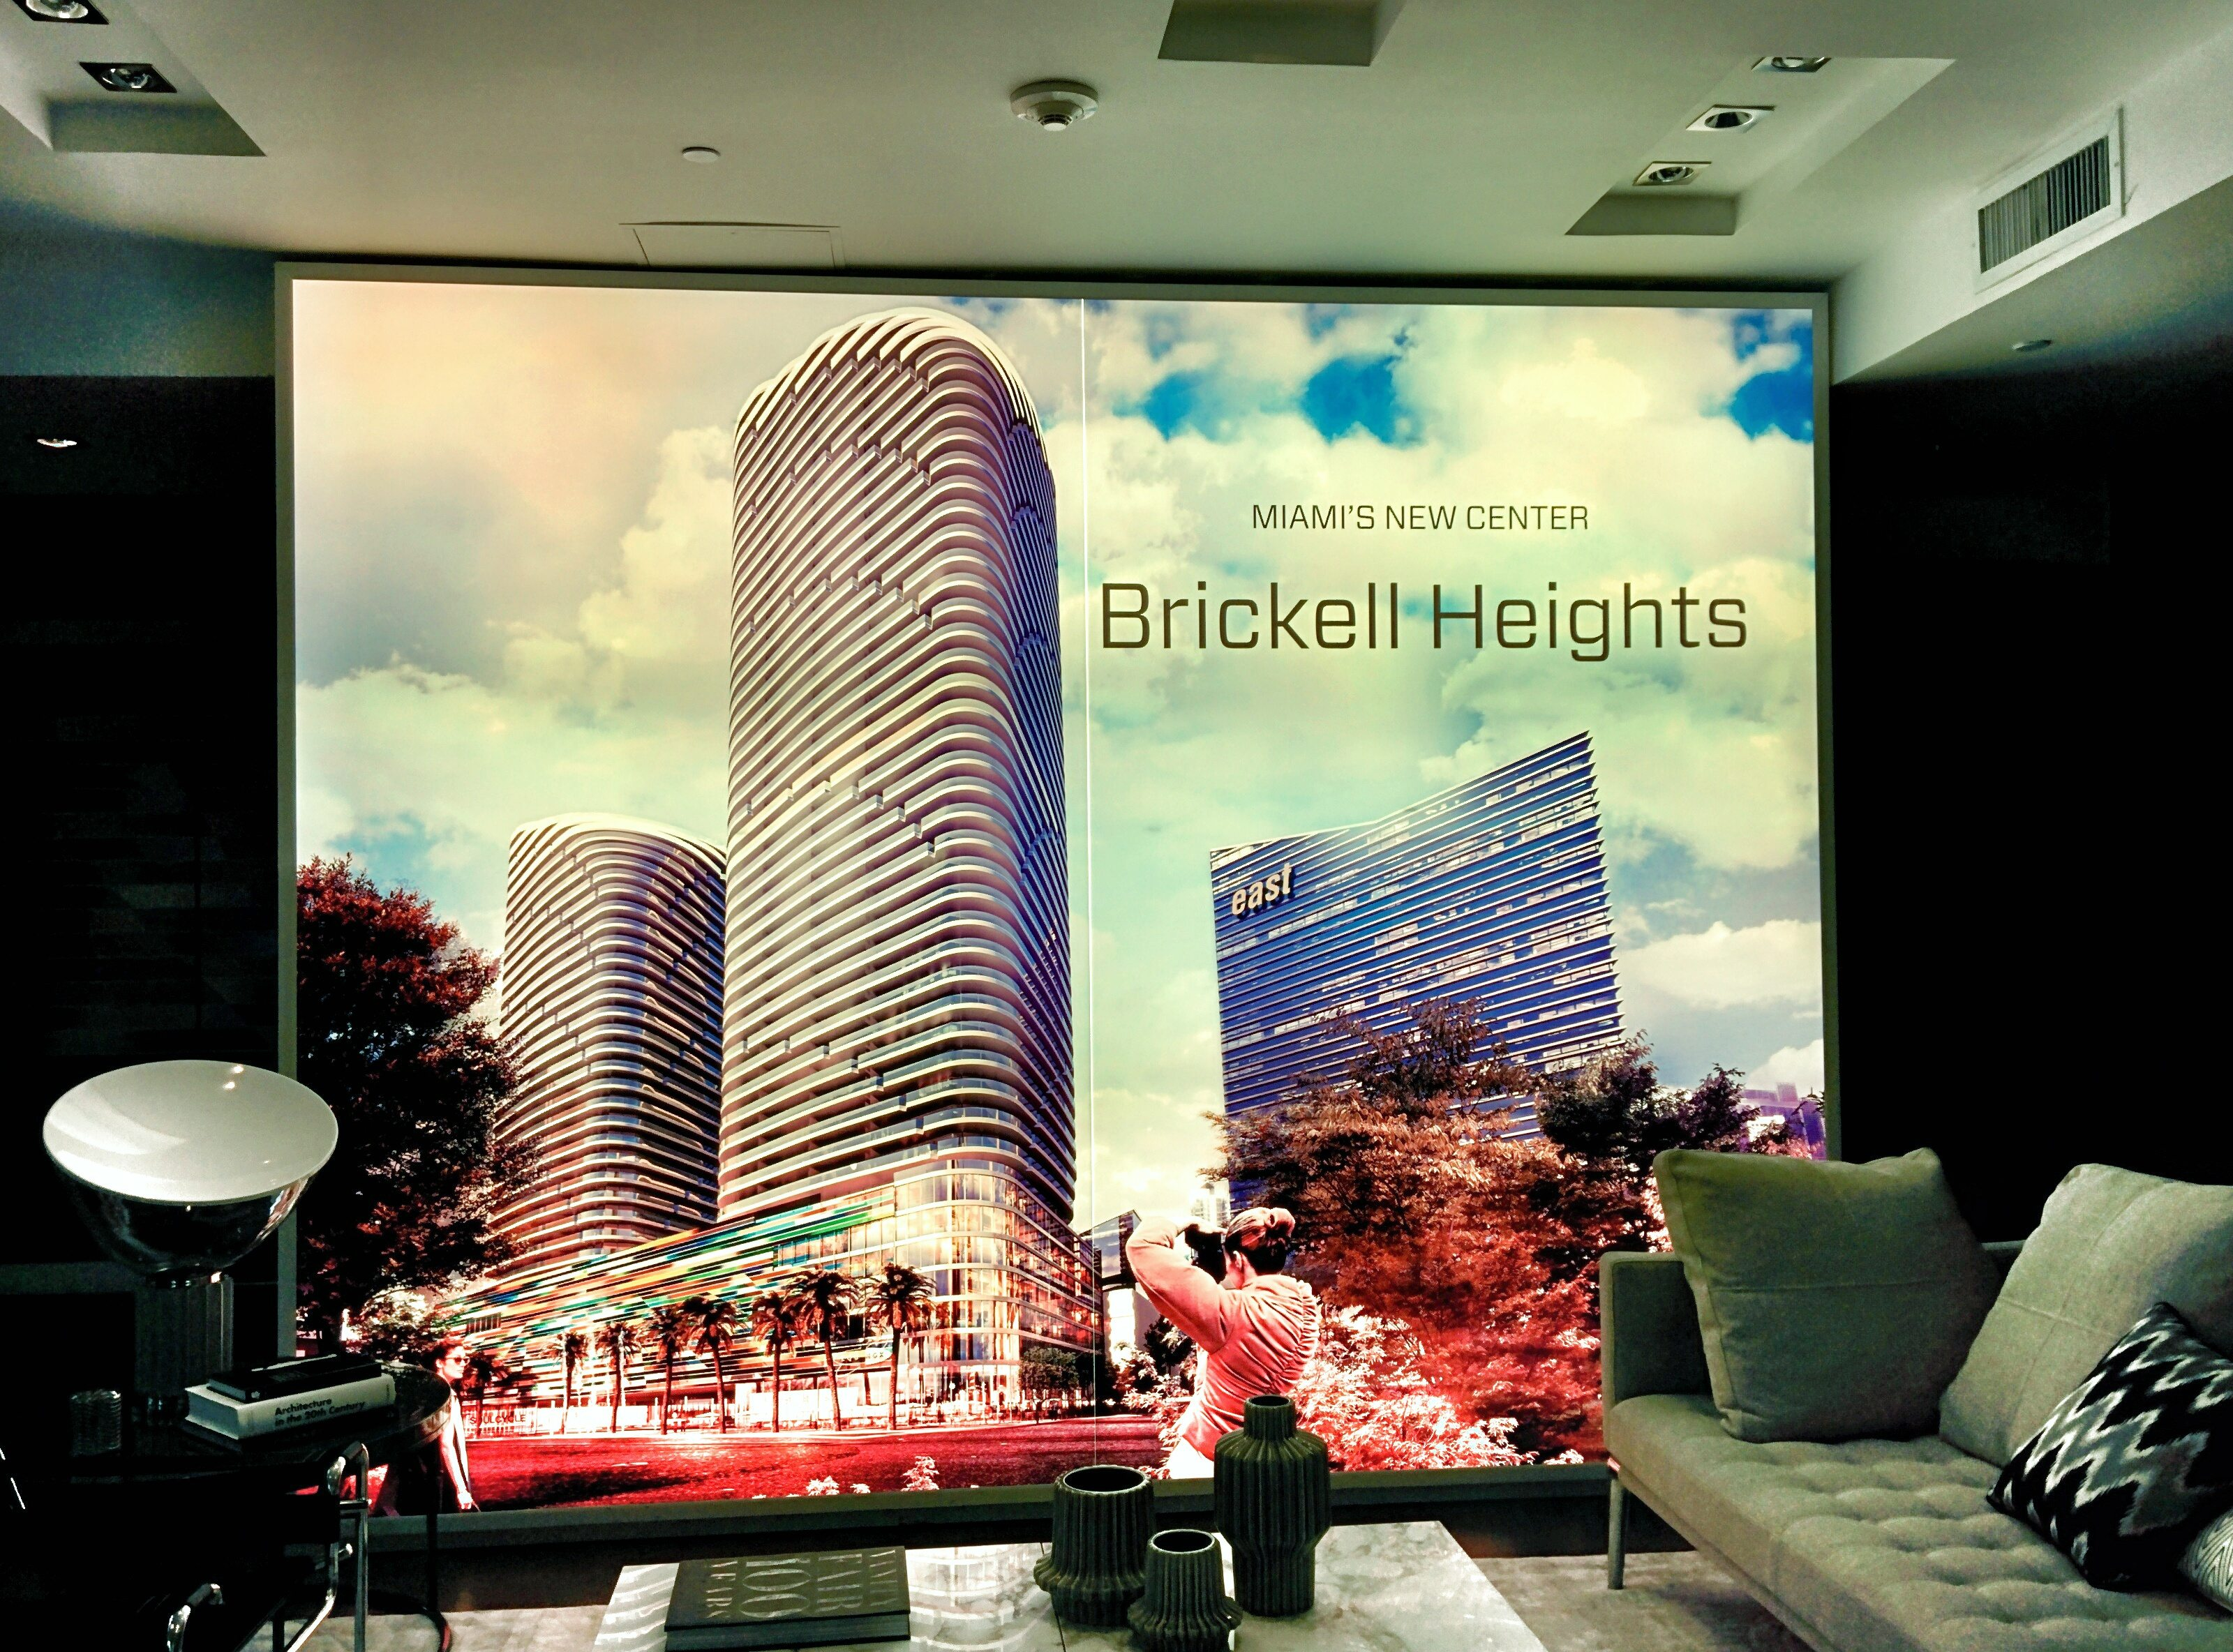 Brickell Heights sales center